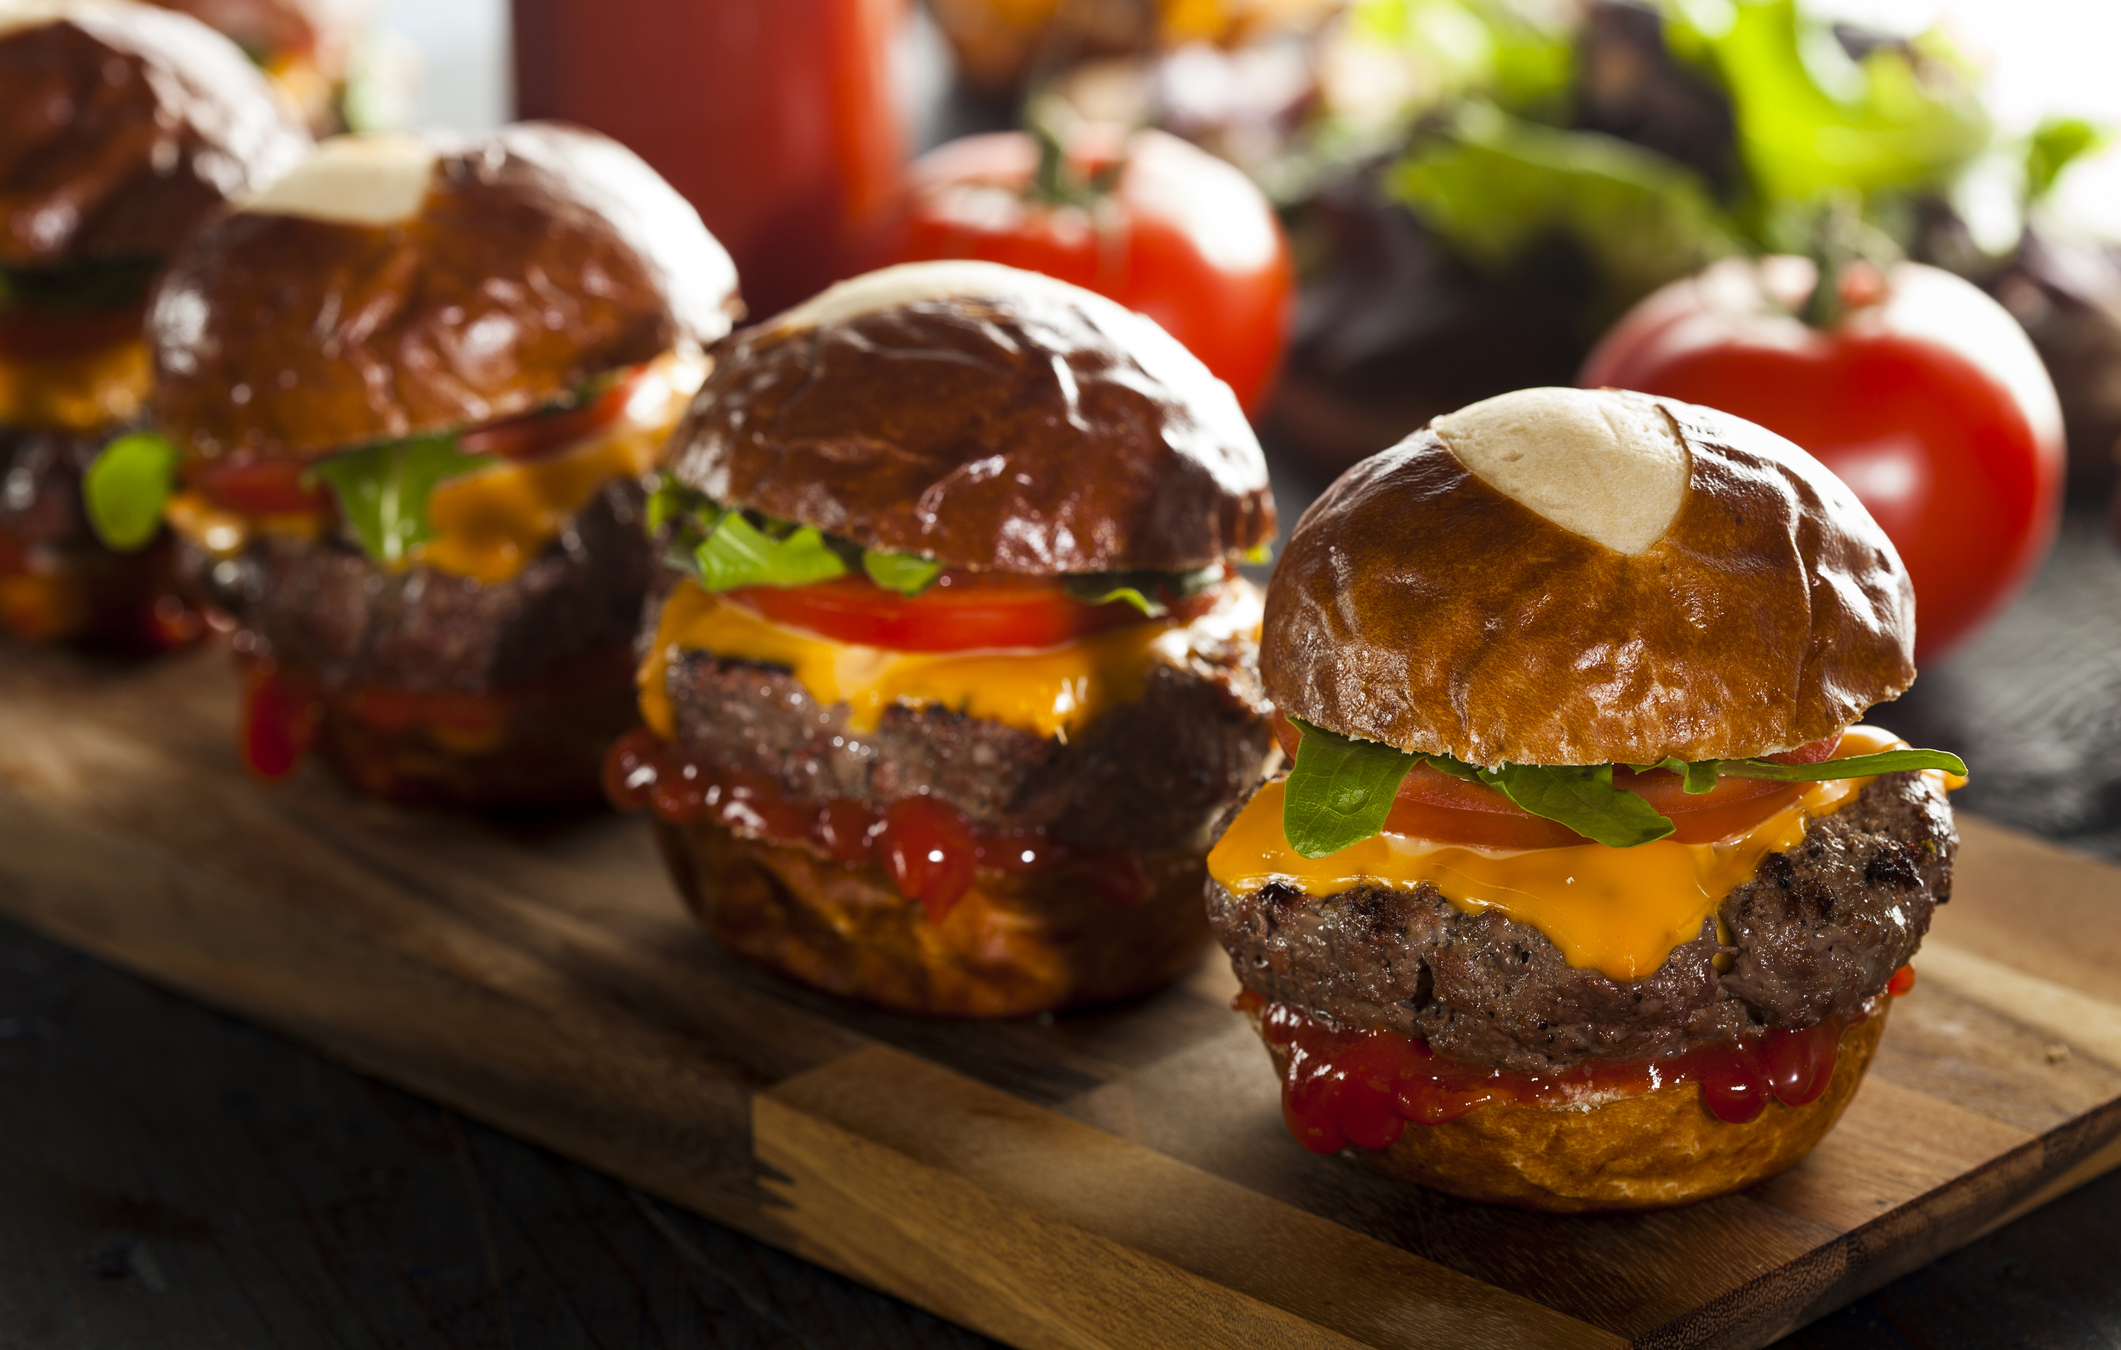 Homemade Cheeseburger Sliders with Lettuce Tomato and Cheese (Thinkstock/PA)